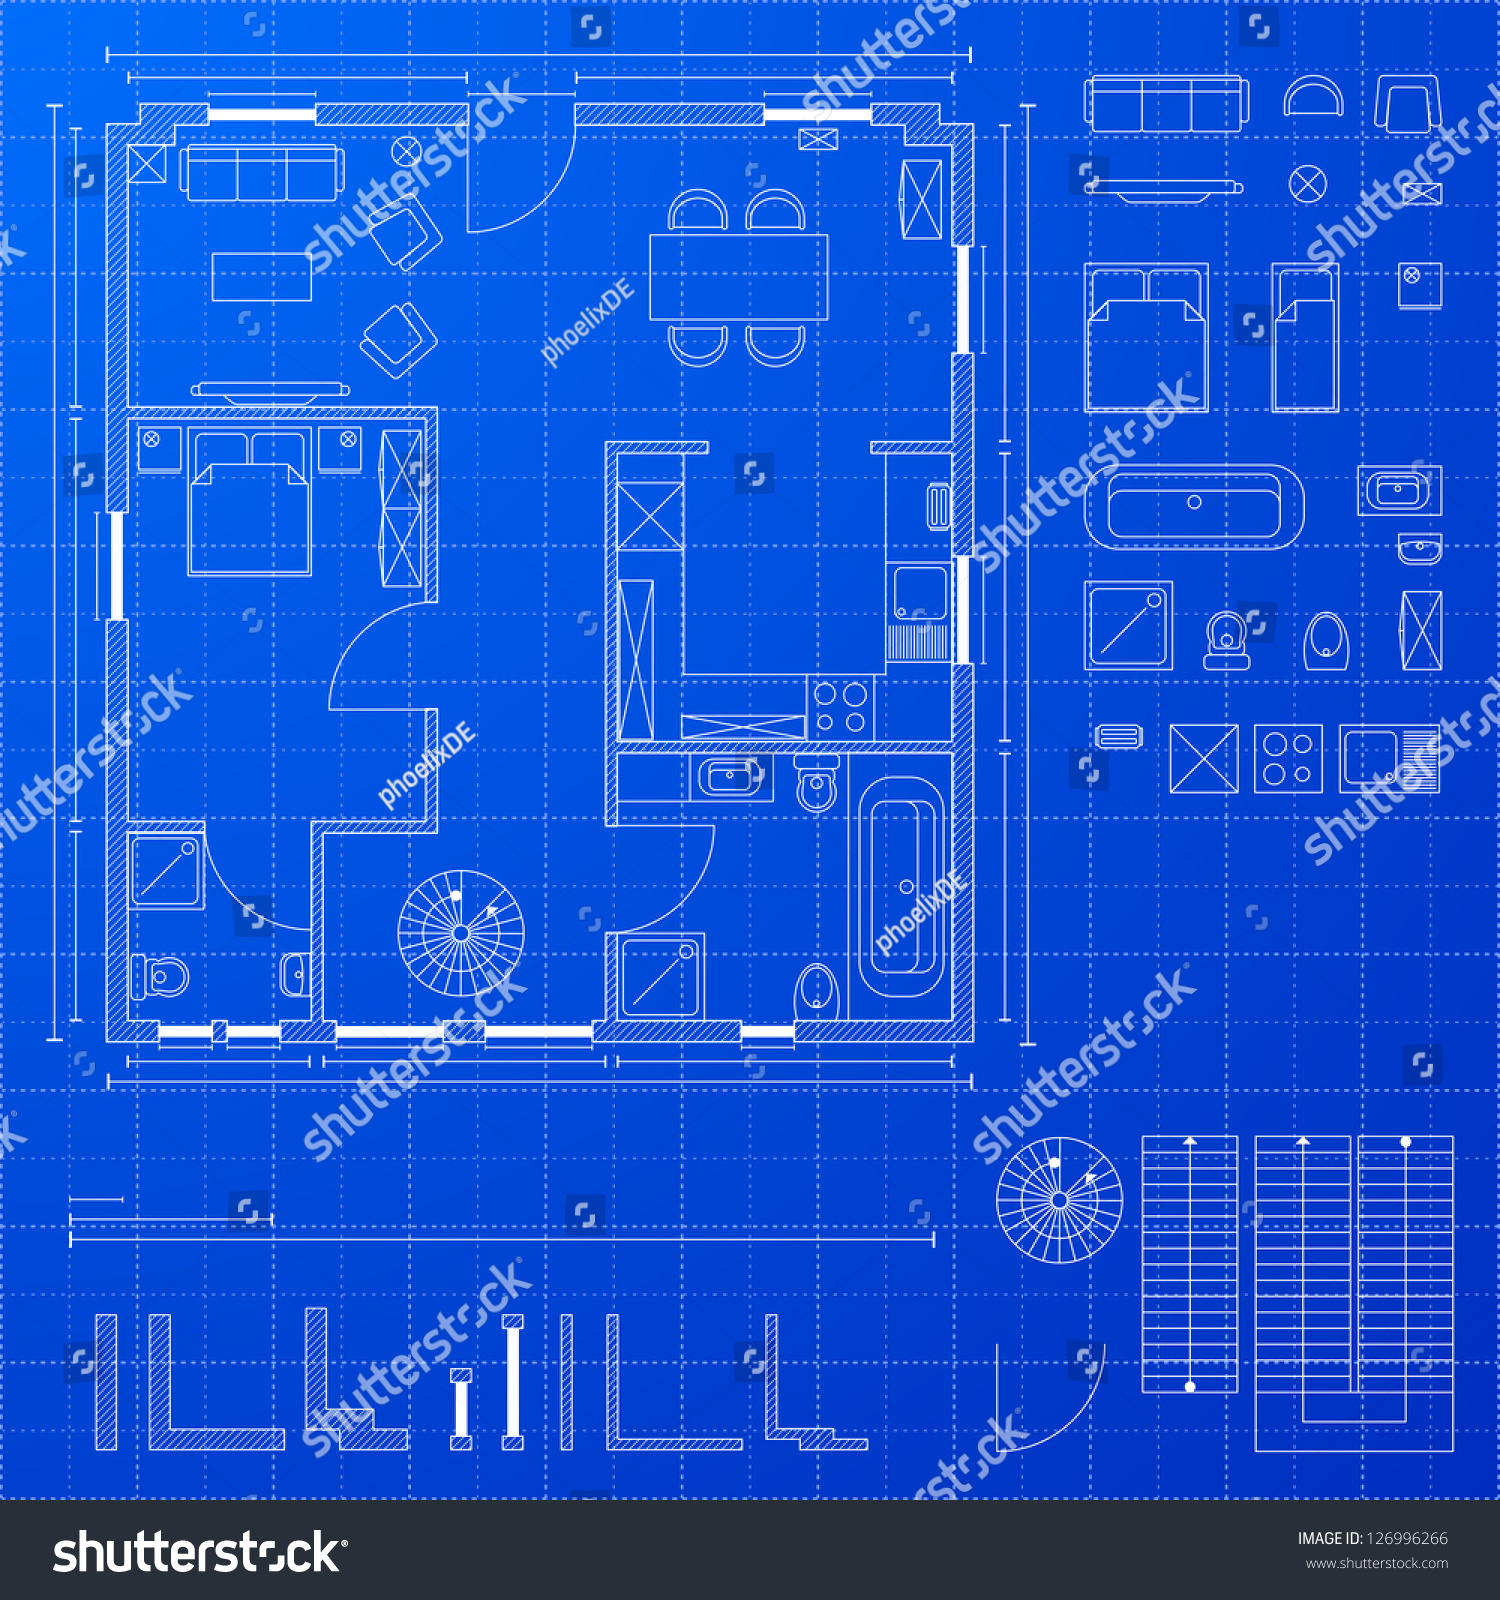 Detailed illustration of a blueprint floorplan with various design elements eps 10